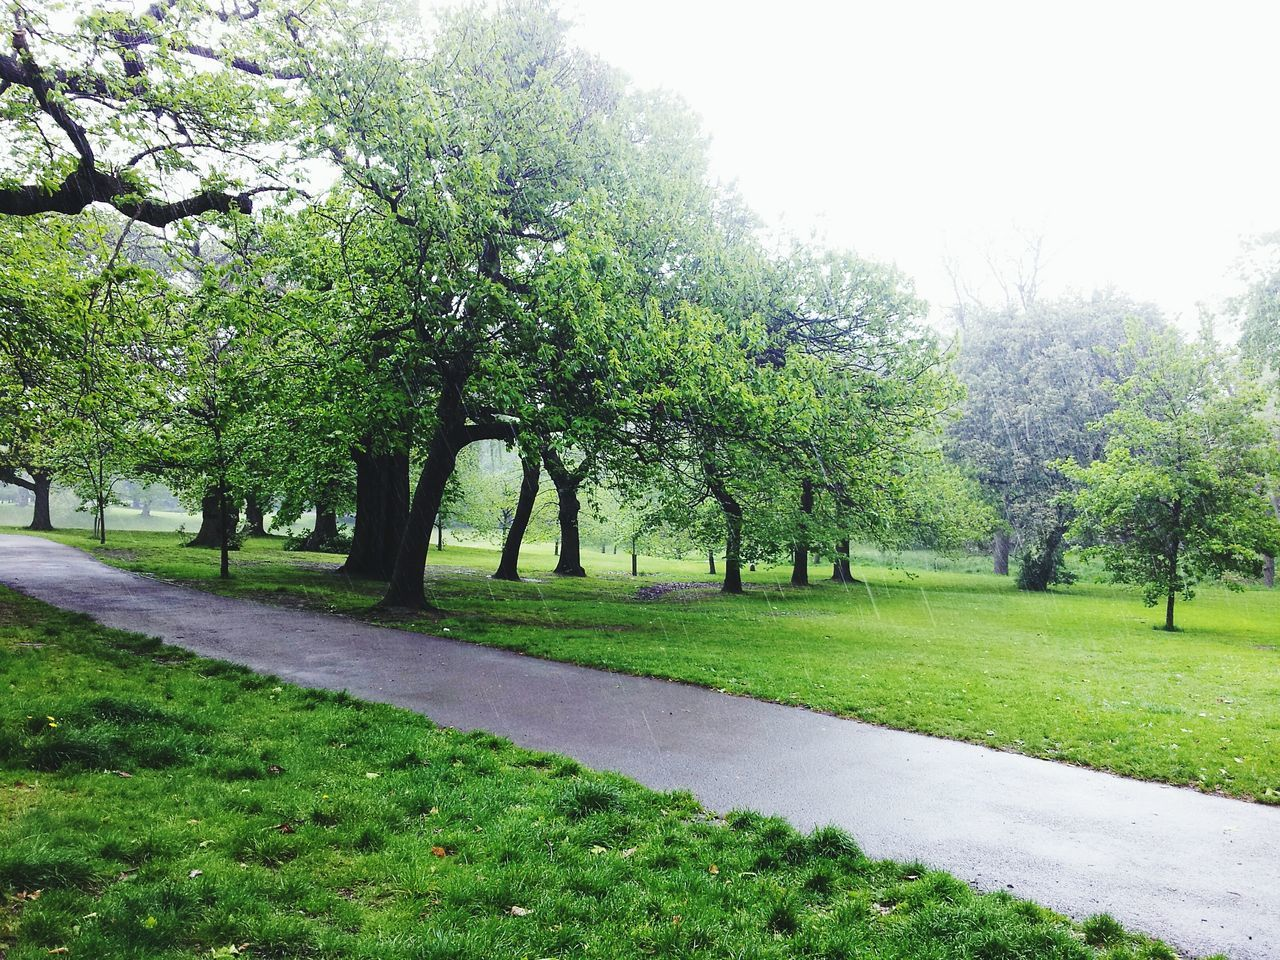 Tree Nature Growth Green Color No People Landscape Outdoors Day Sky Nature Scenics Green Color Grass Greenwich Park Beauty In Nature Greenwich,London Tree Trunk